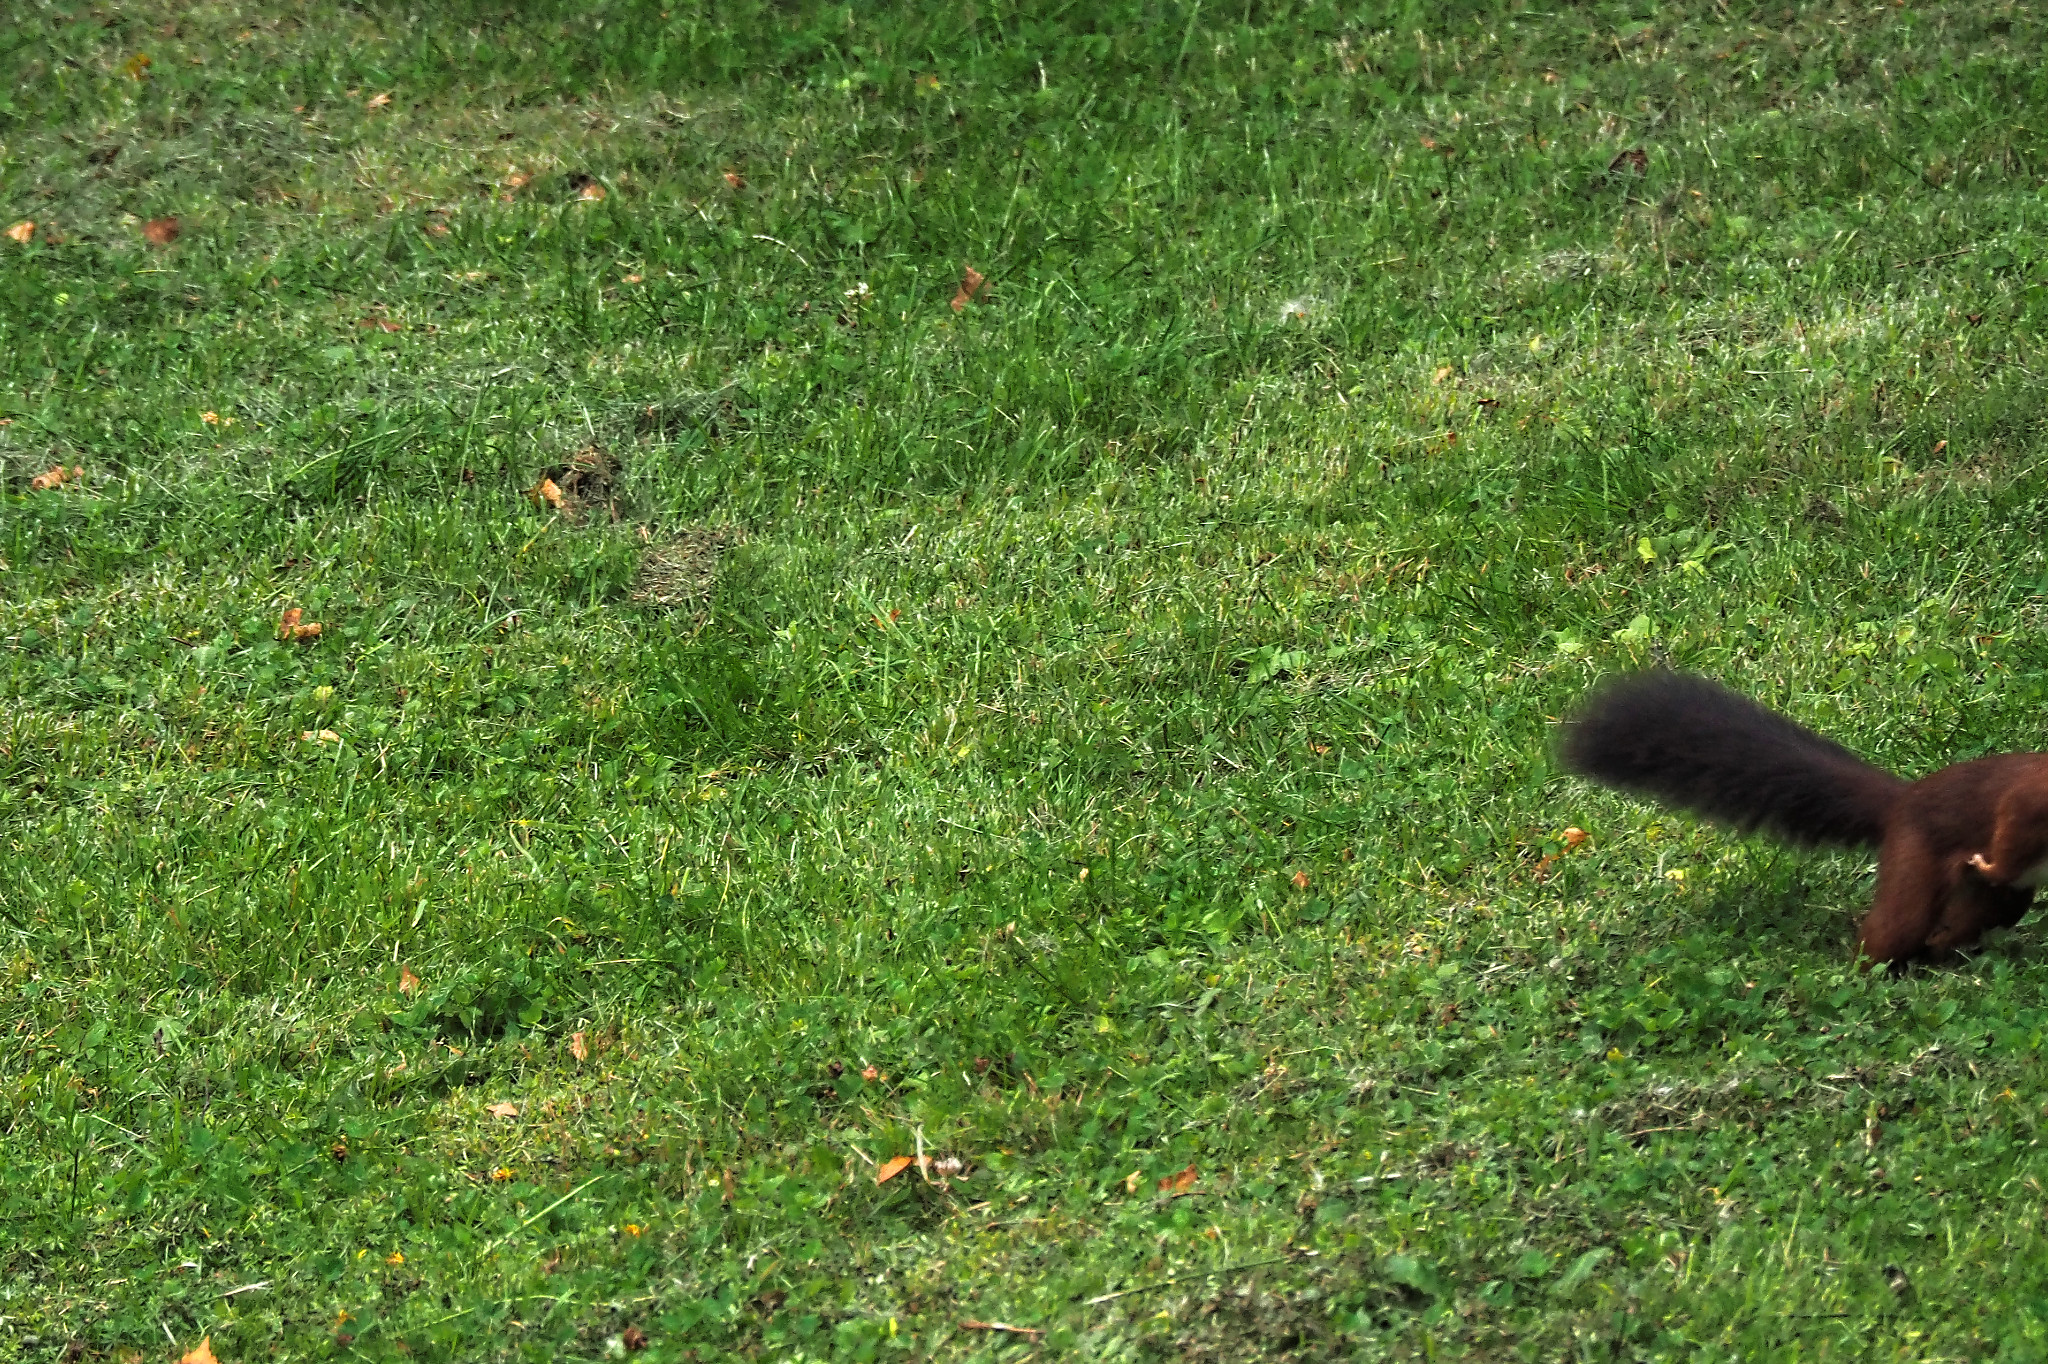 Squirrels in the garden of Woody End     - Photographer : A. Stélandre